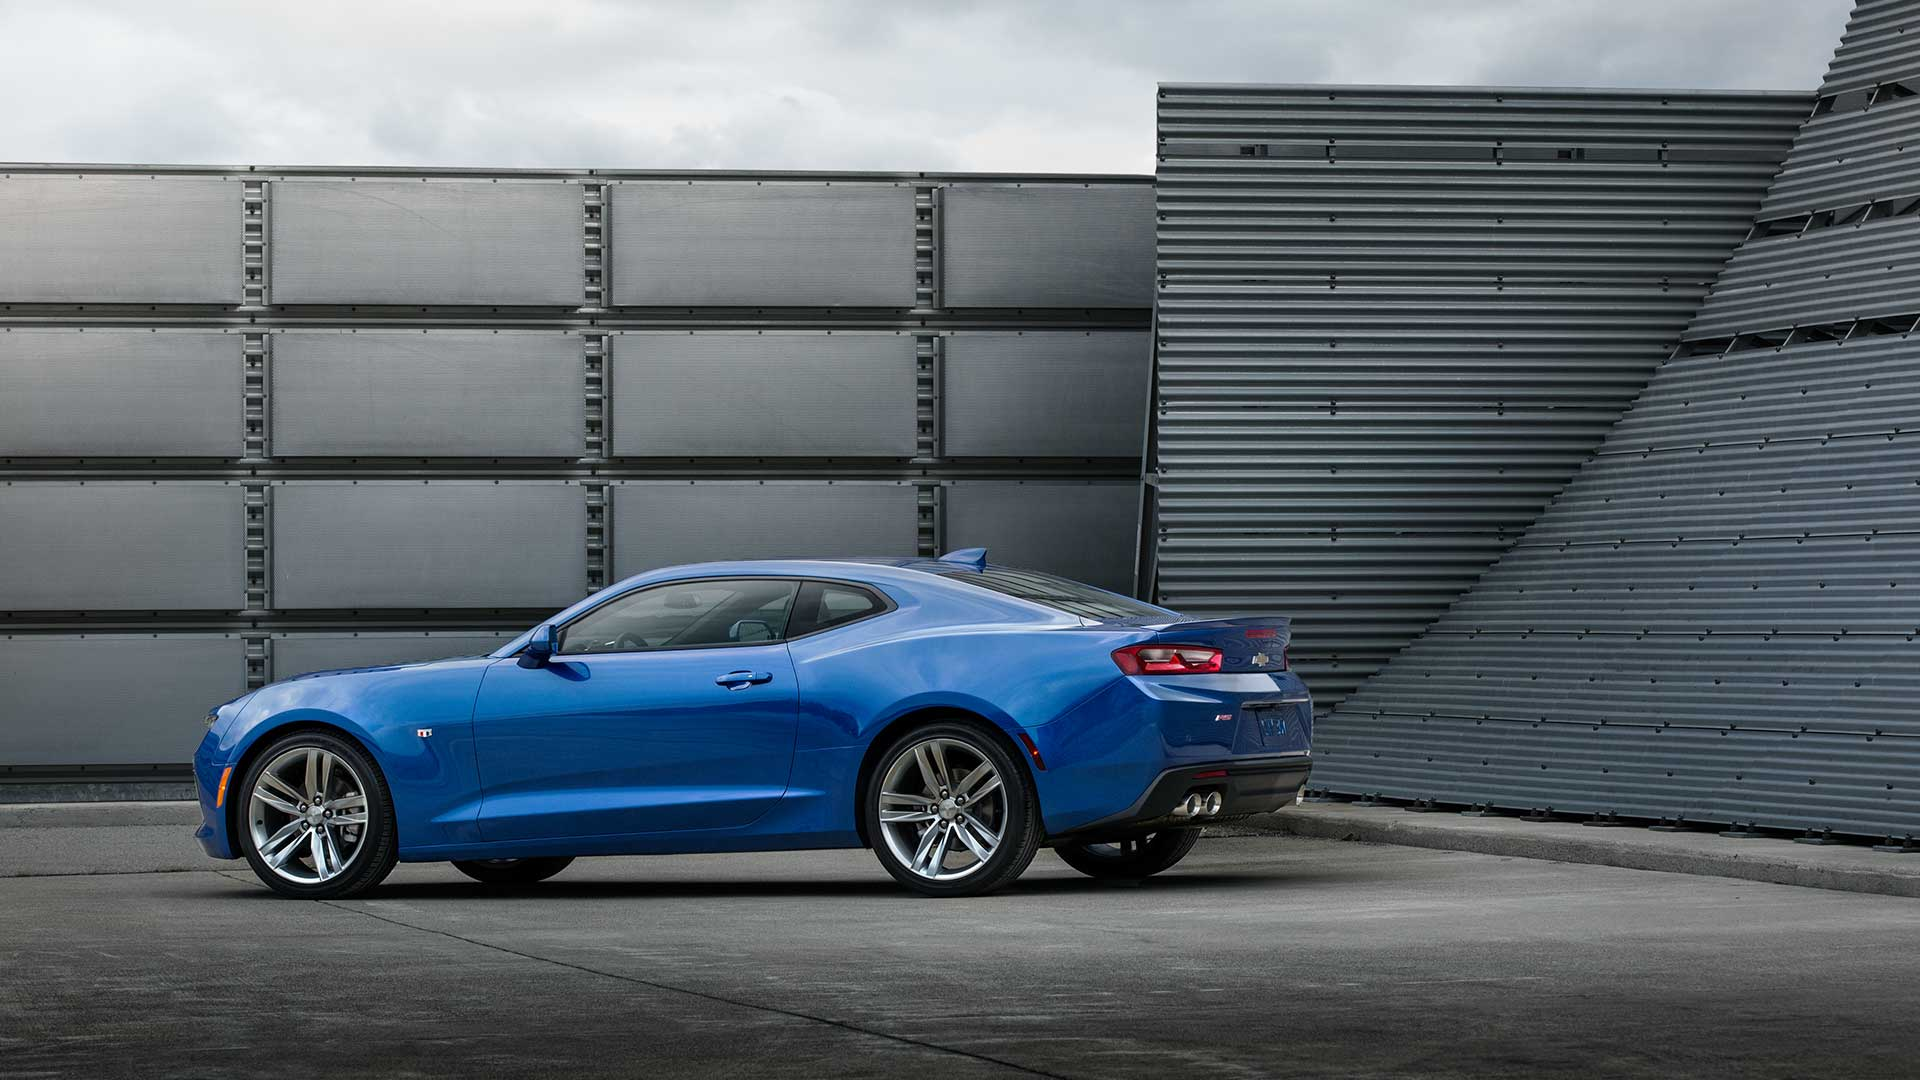 2017 chevrolet camaro coupe 1lt superior chevrolet conway ar. Cars Review. Best American Auto & Cars Review